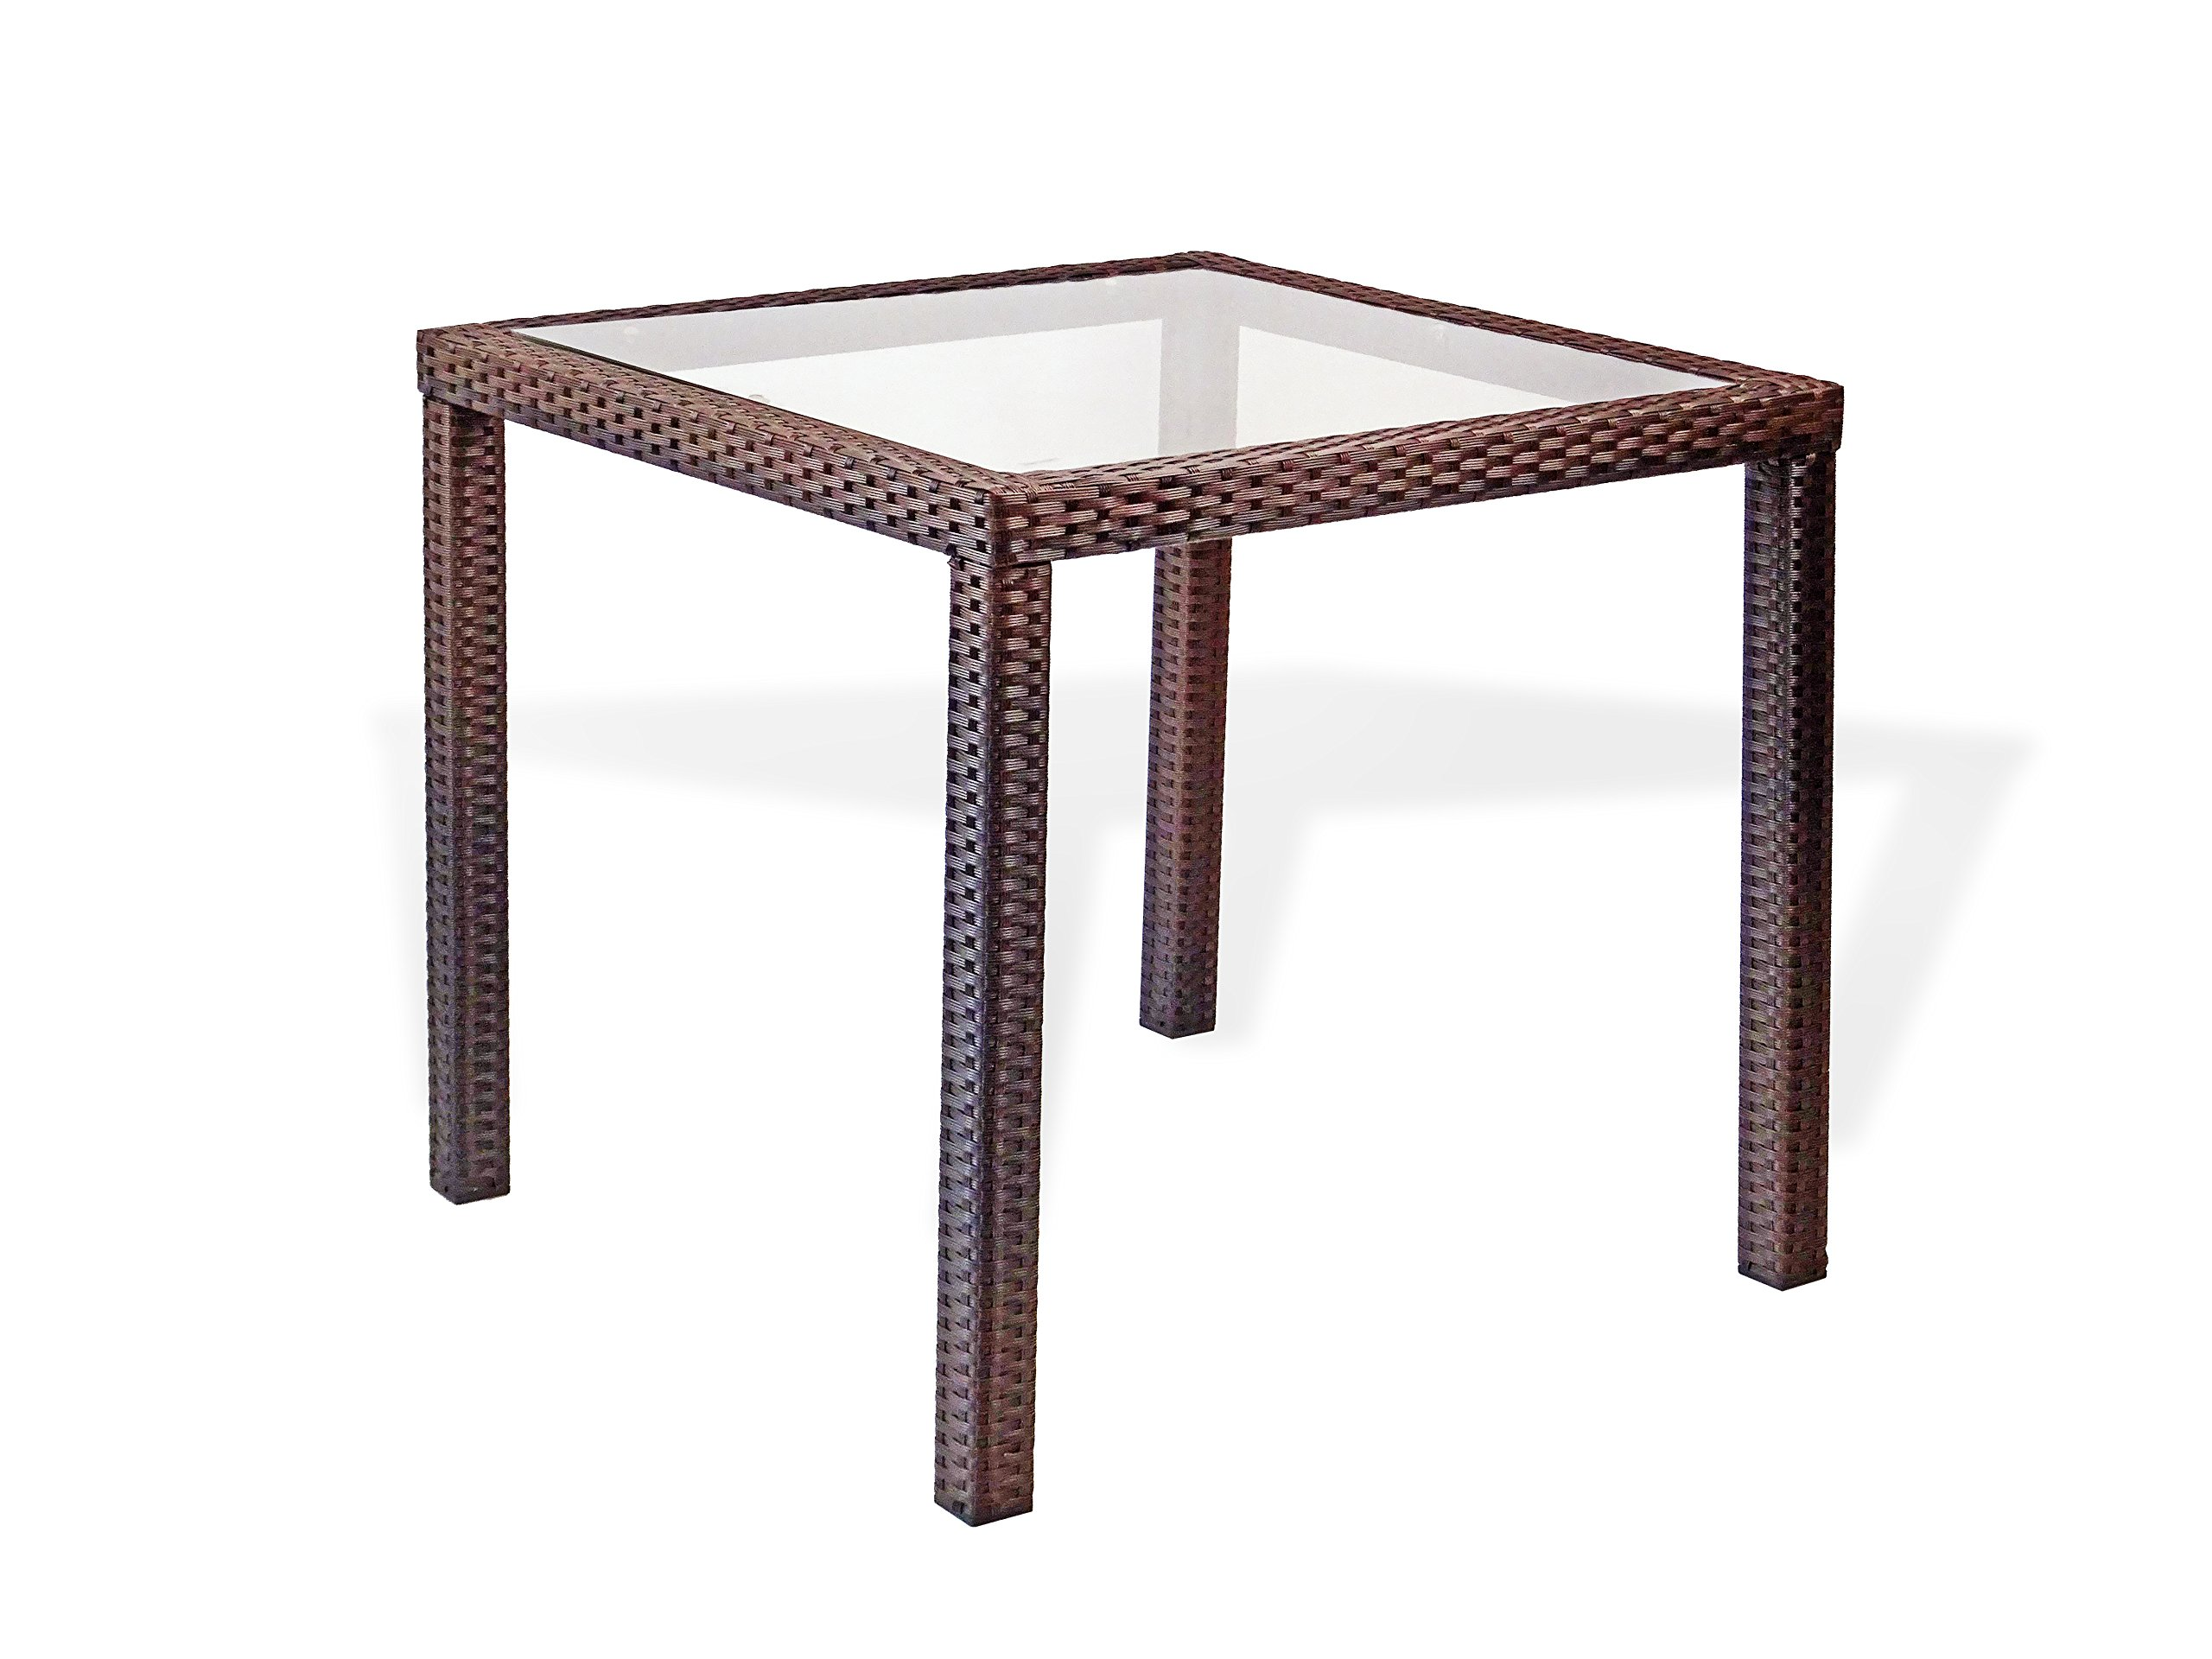 Patio Resin Outdoor Wicker Square 31 5 Inches Dining Table W Glass Top Dark Brown Buy Online In Bermuda At Bermuda Desertcart Com Productid 42543260